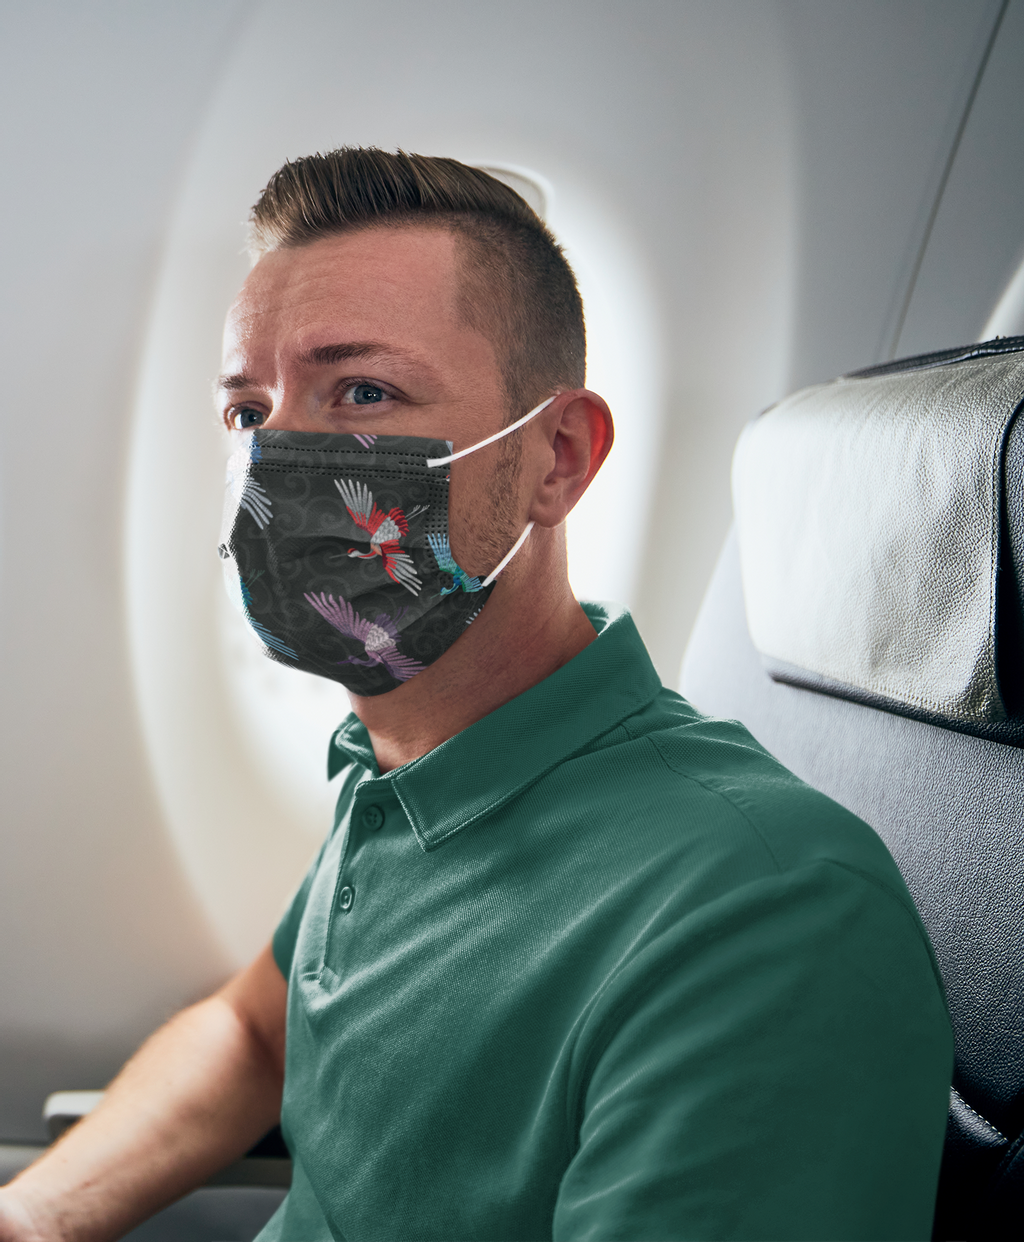 face-mask-mockup-of-a-man-on-a-plane-41961-r-el2 (2).png